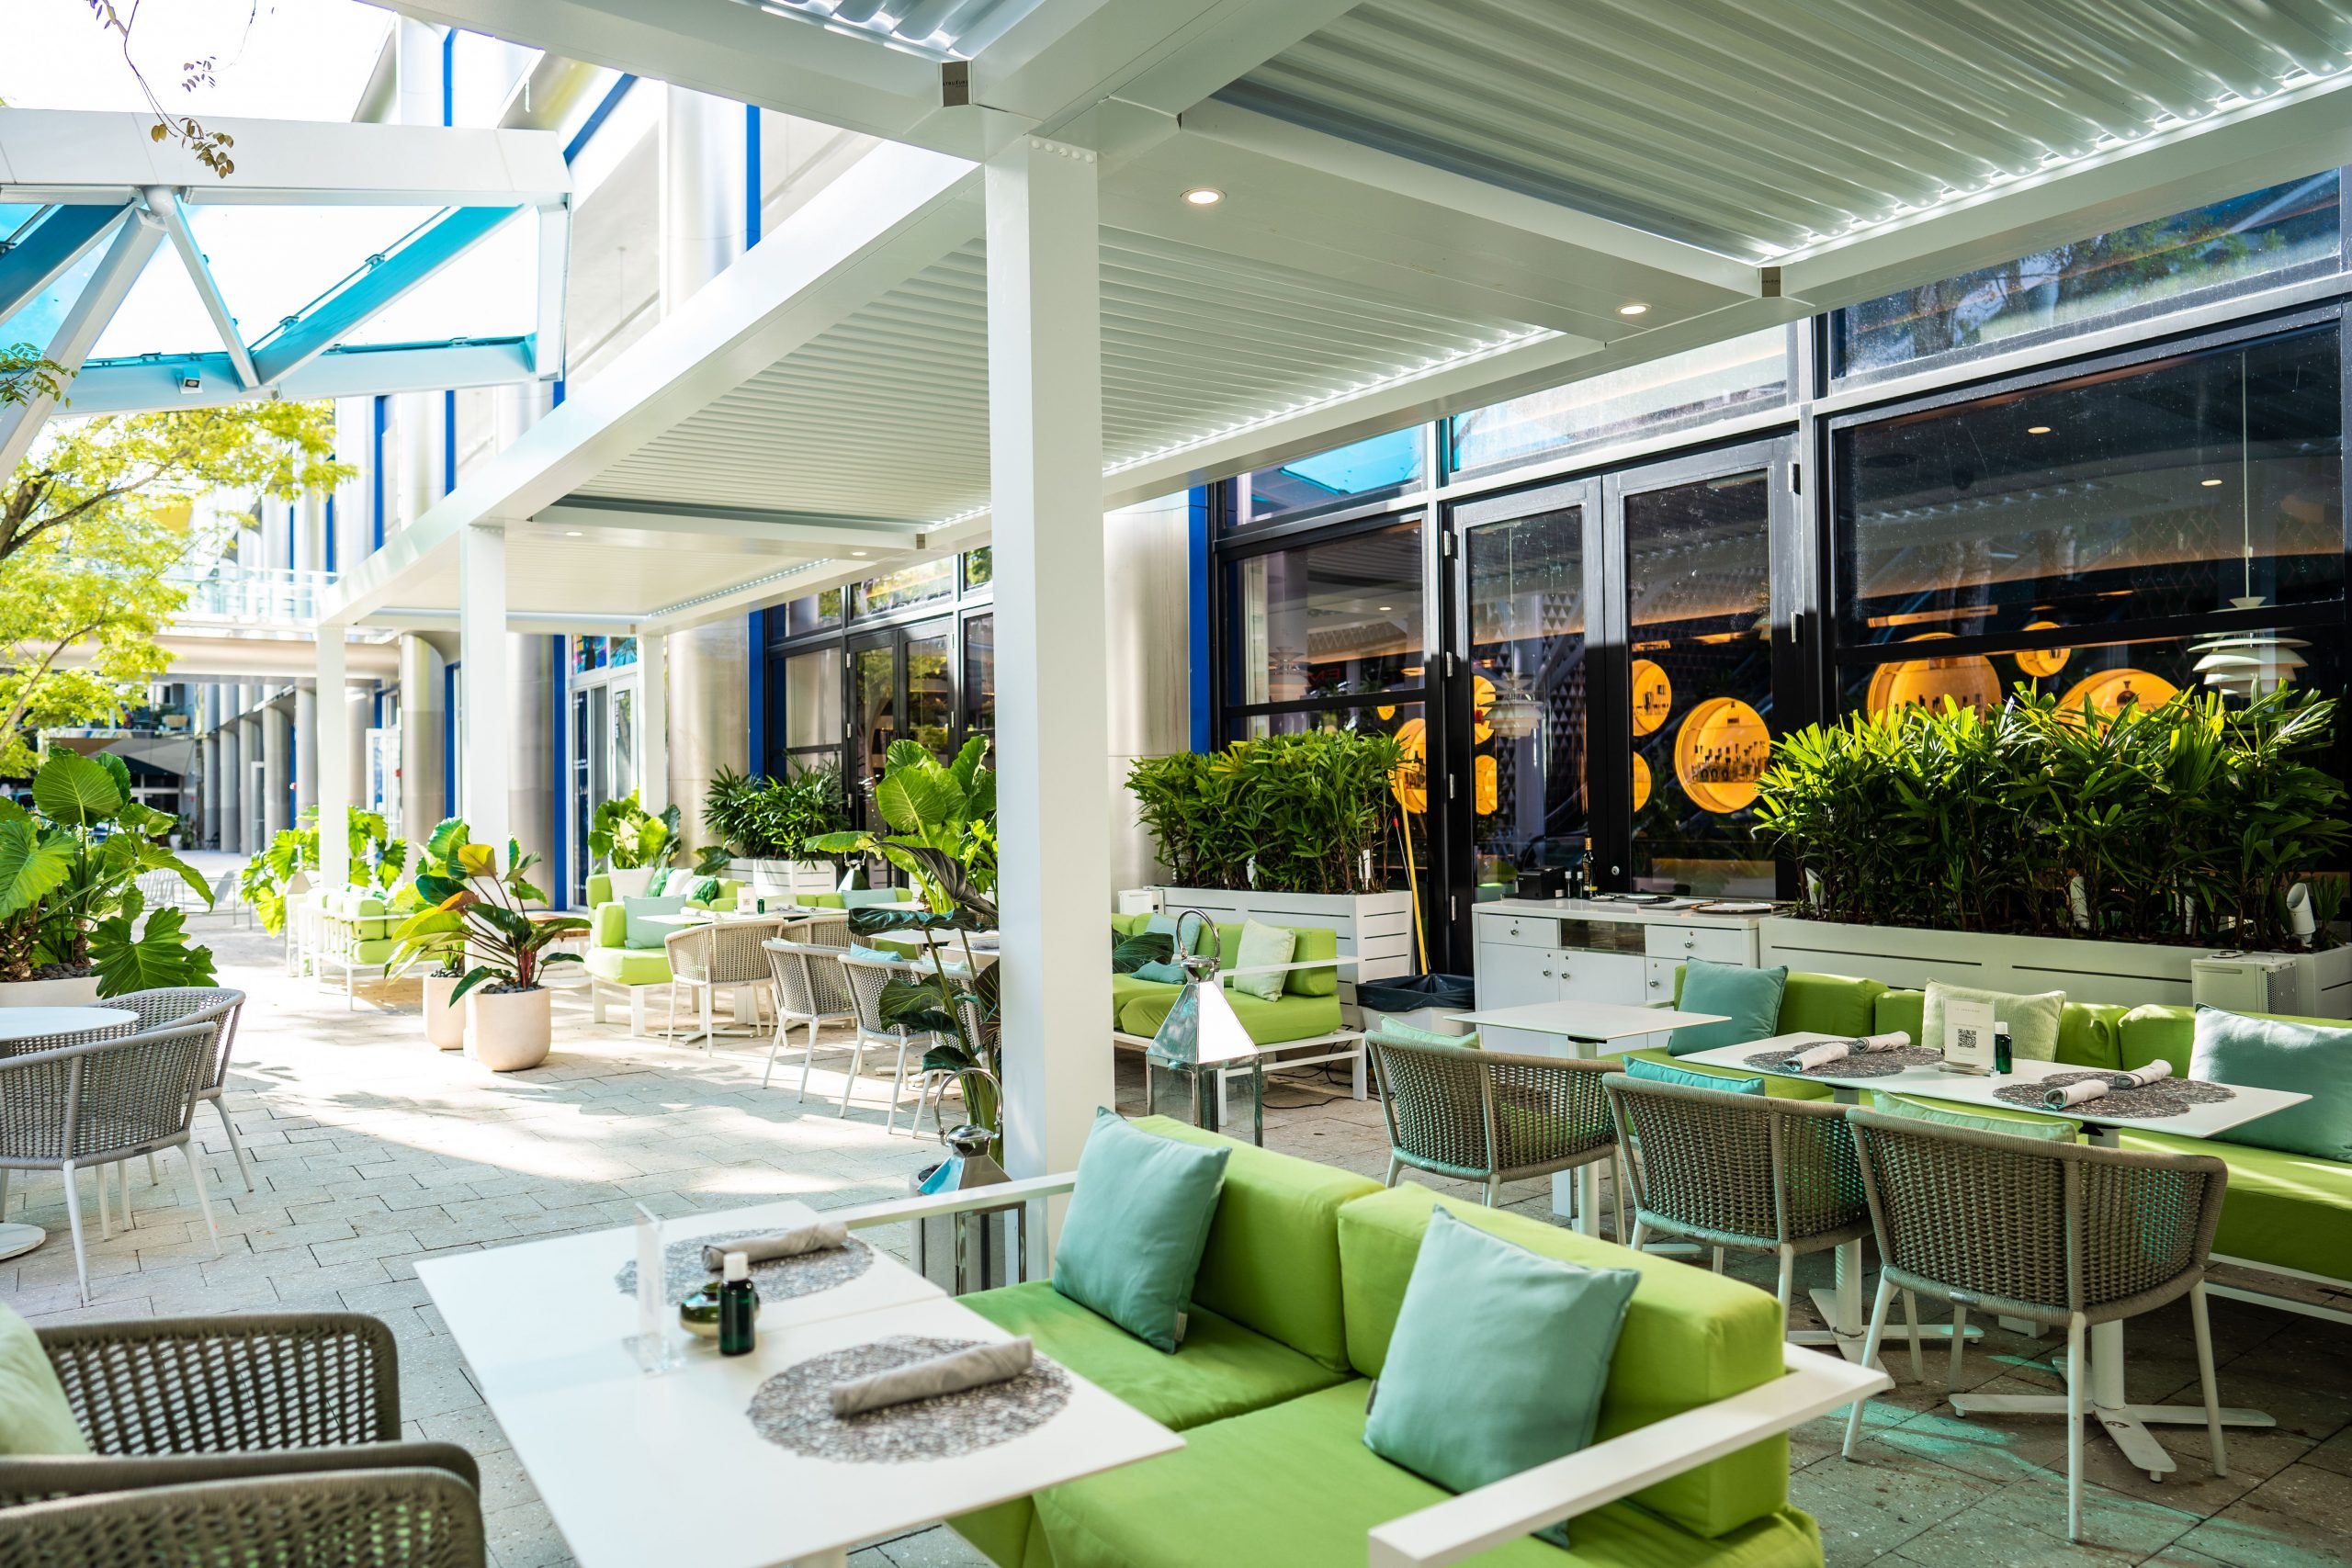 Le Jardinier in the Miami Design District Debuts Sunday Brunch